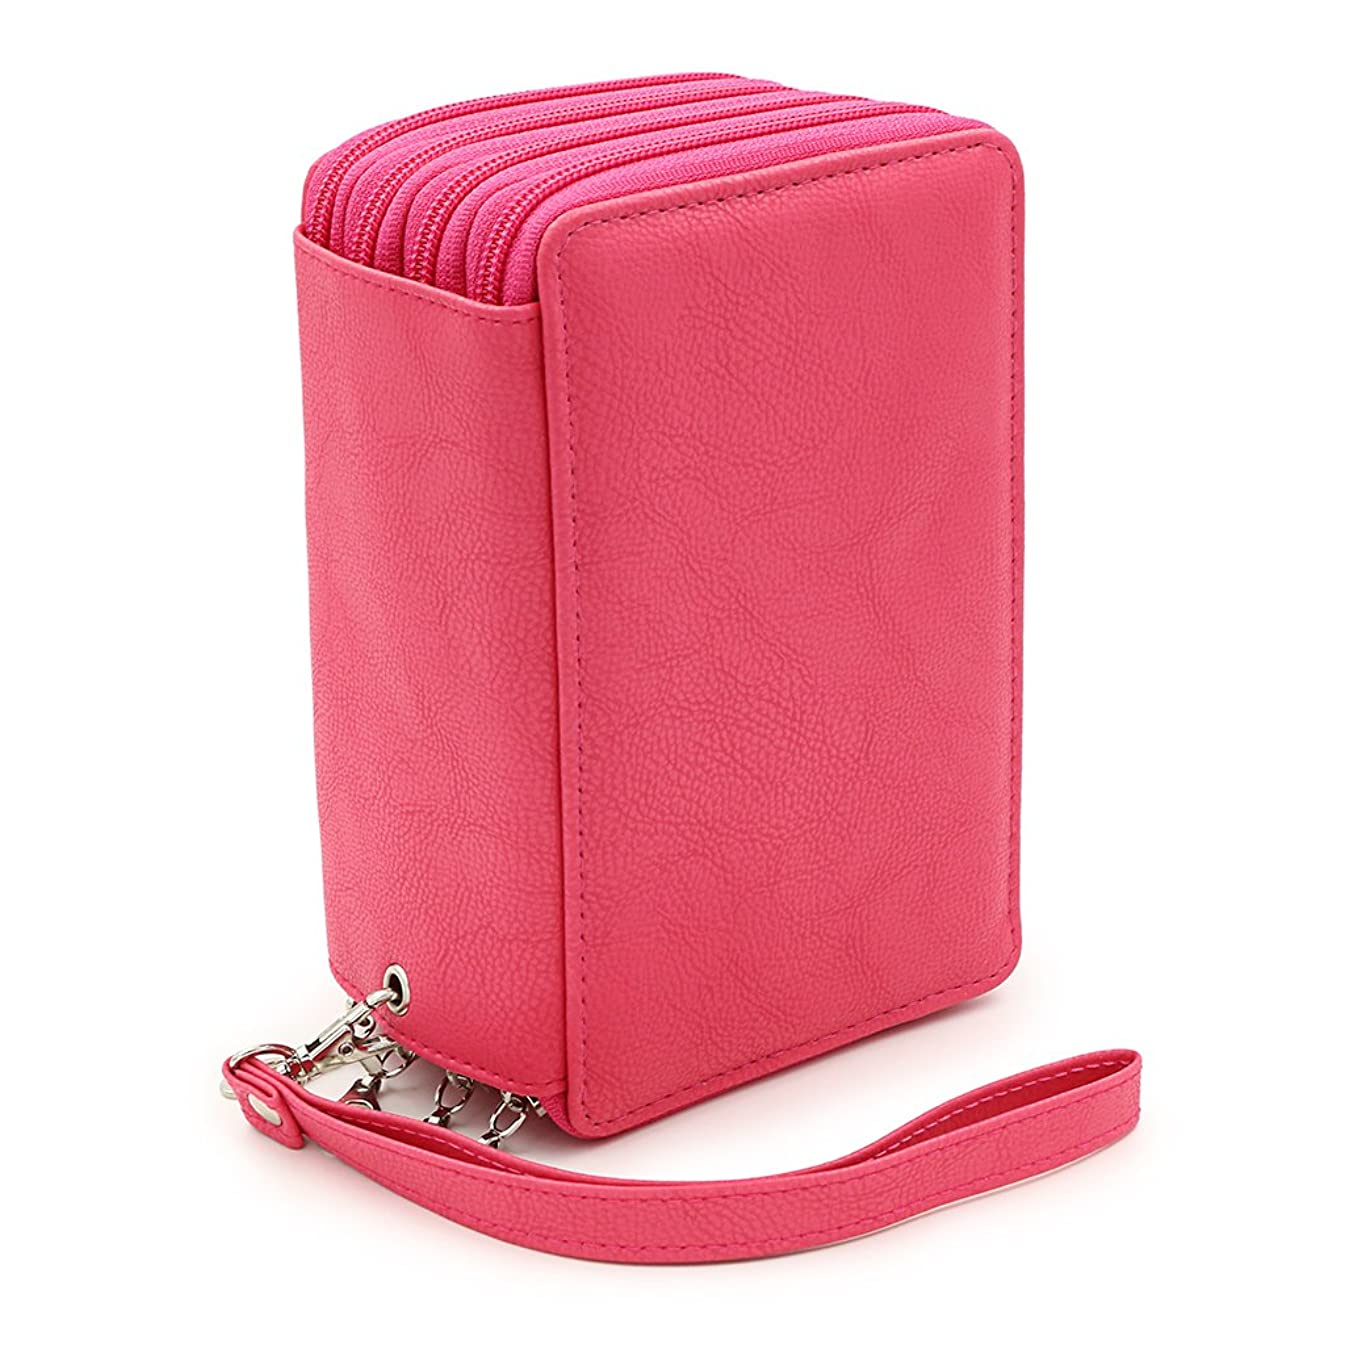 BTSKY PU Leather Colored Pencil Case with Compartments-72 Slots Handy Pencil Bags Large for Watercolor Pencils, Gel Pens and Ordinary Pencils (Pink)